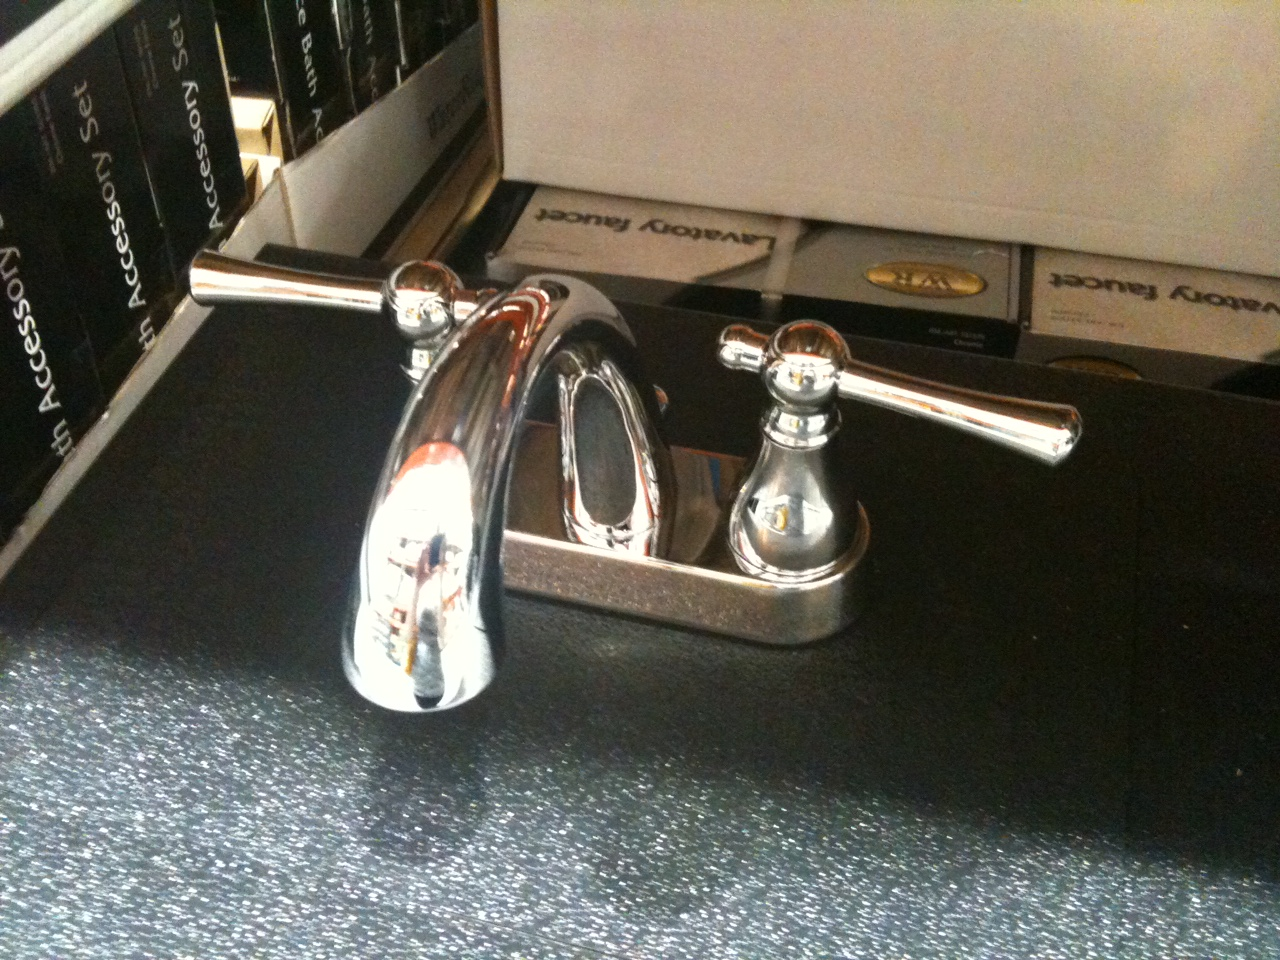 Brookhaven Renovation: Faucets Selected